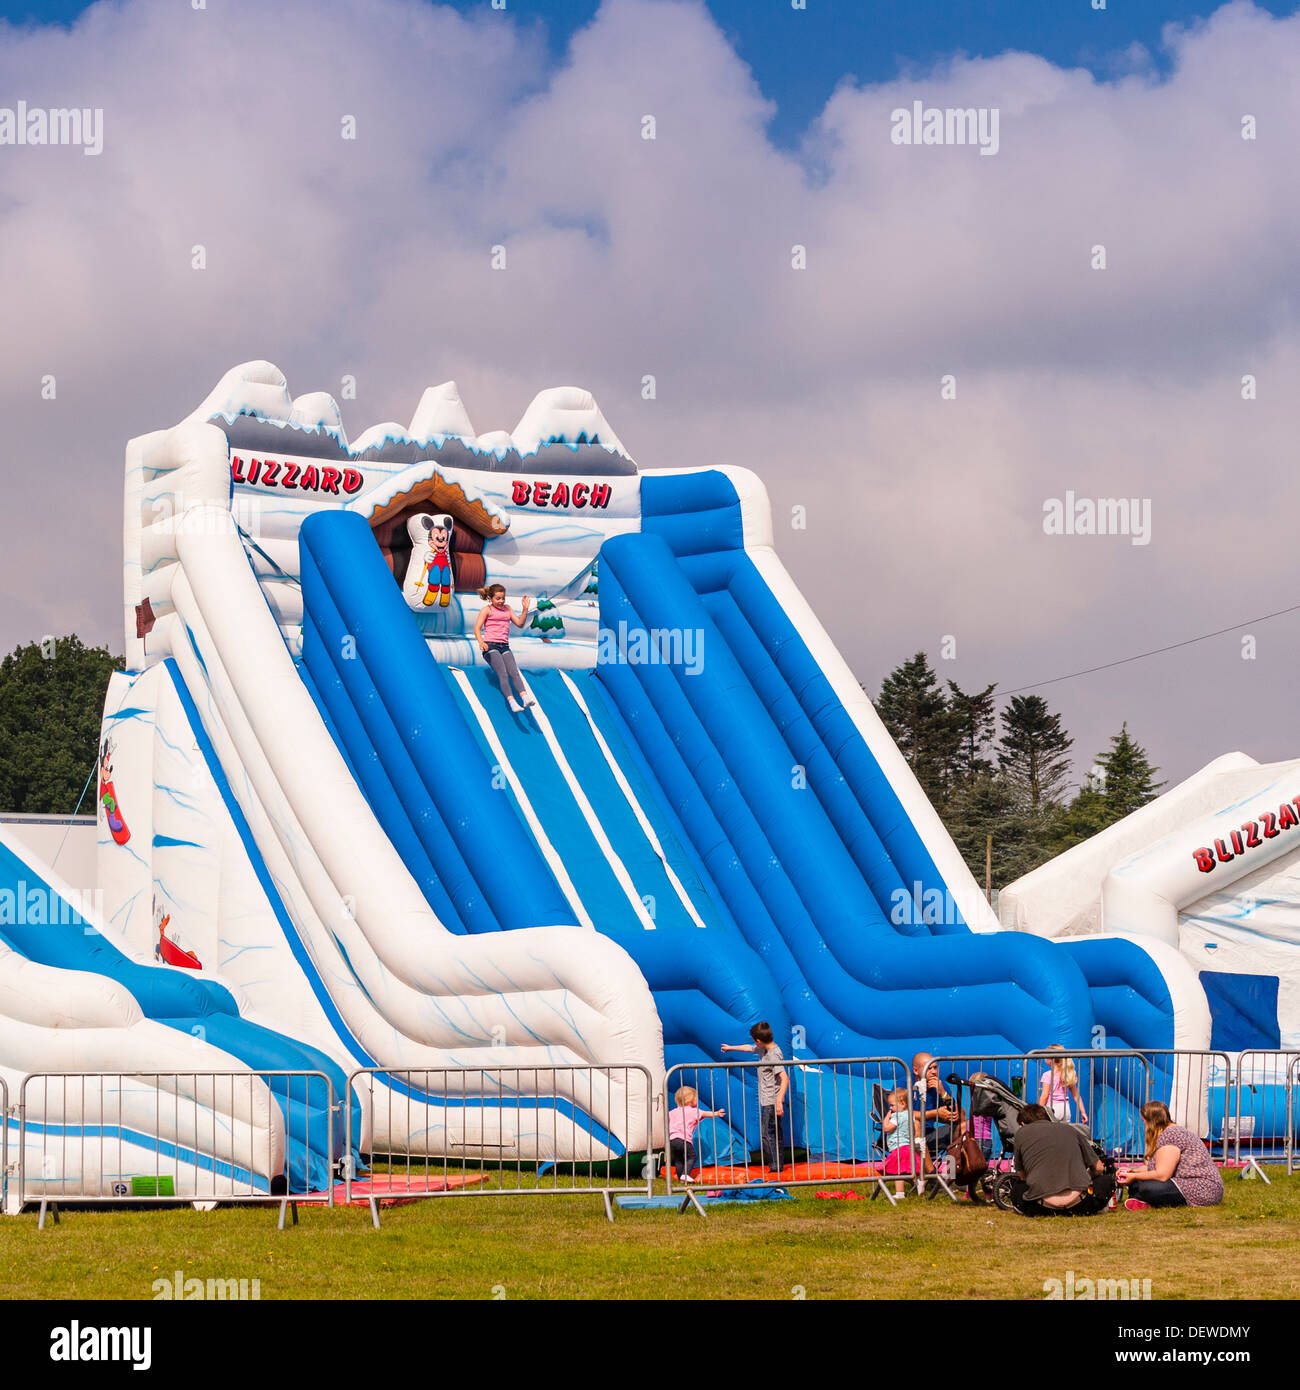 A bouncy inflateable slide at The All About Dogs Show at the Norfolk Showground, Norwich, Norfolk, England, Britain, Uk - Stock Image